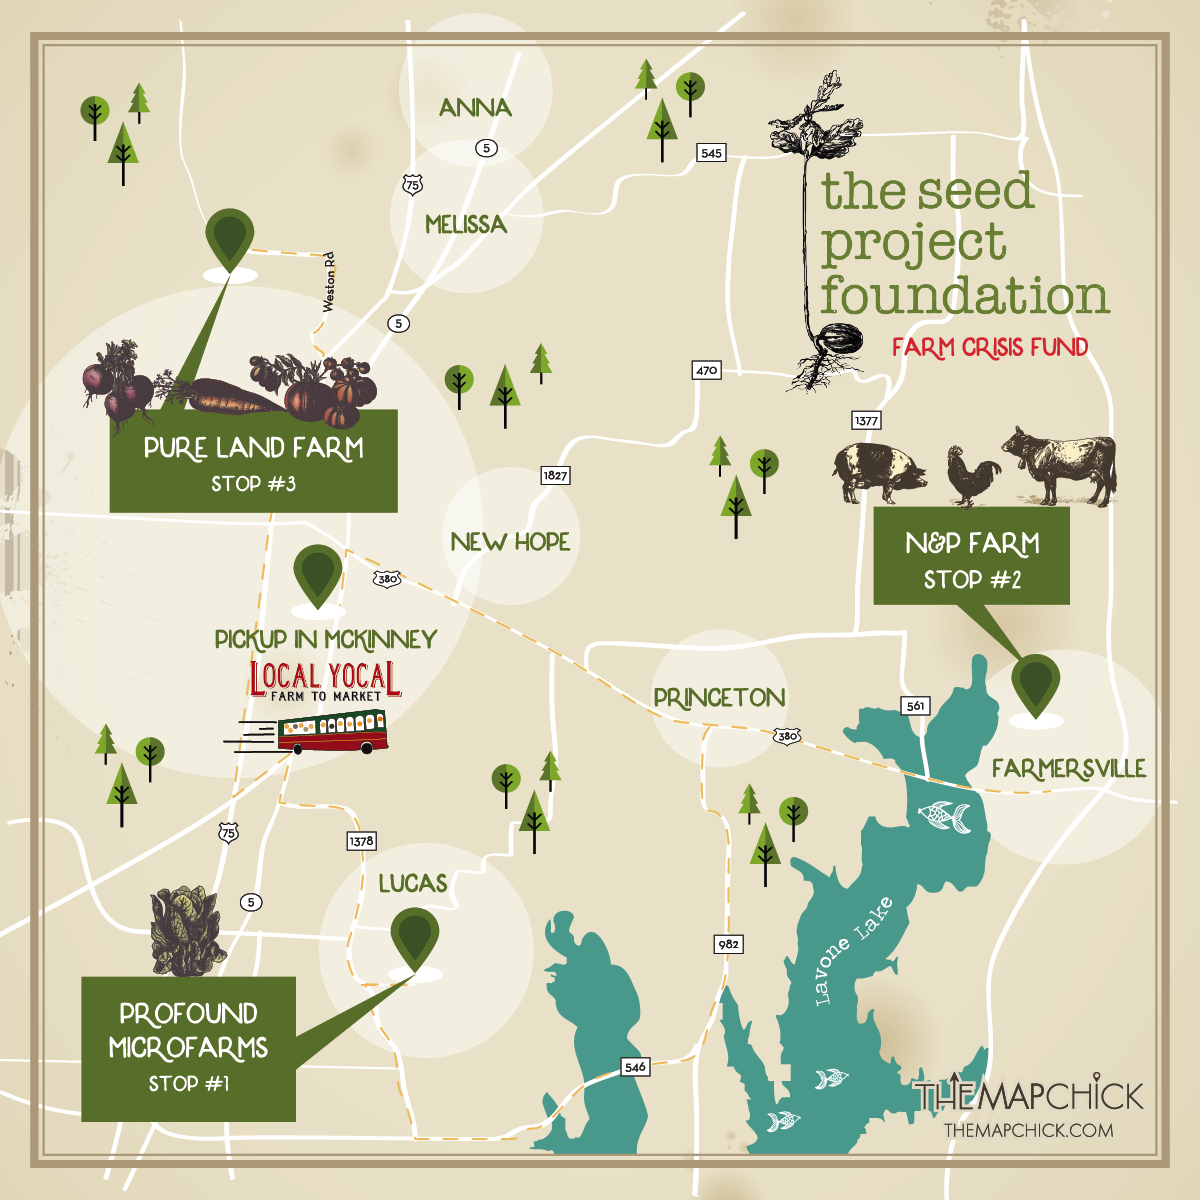 McKinney Seed Project Foundation Farm Farm Crisis Fund_Map Front copy.png